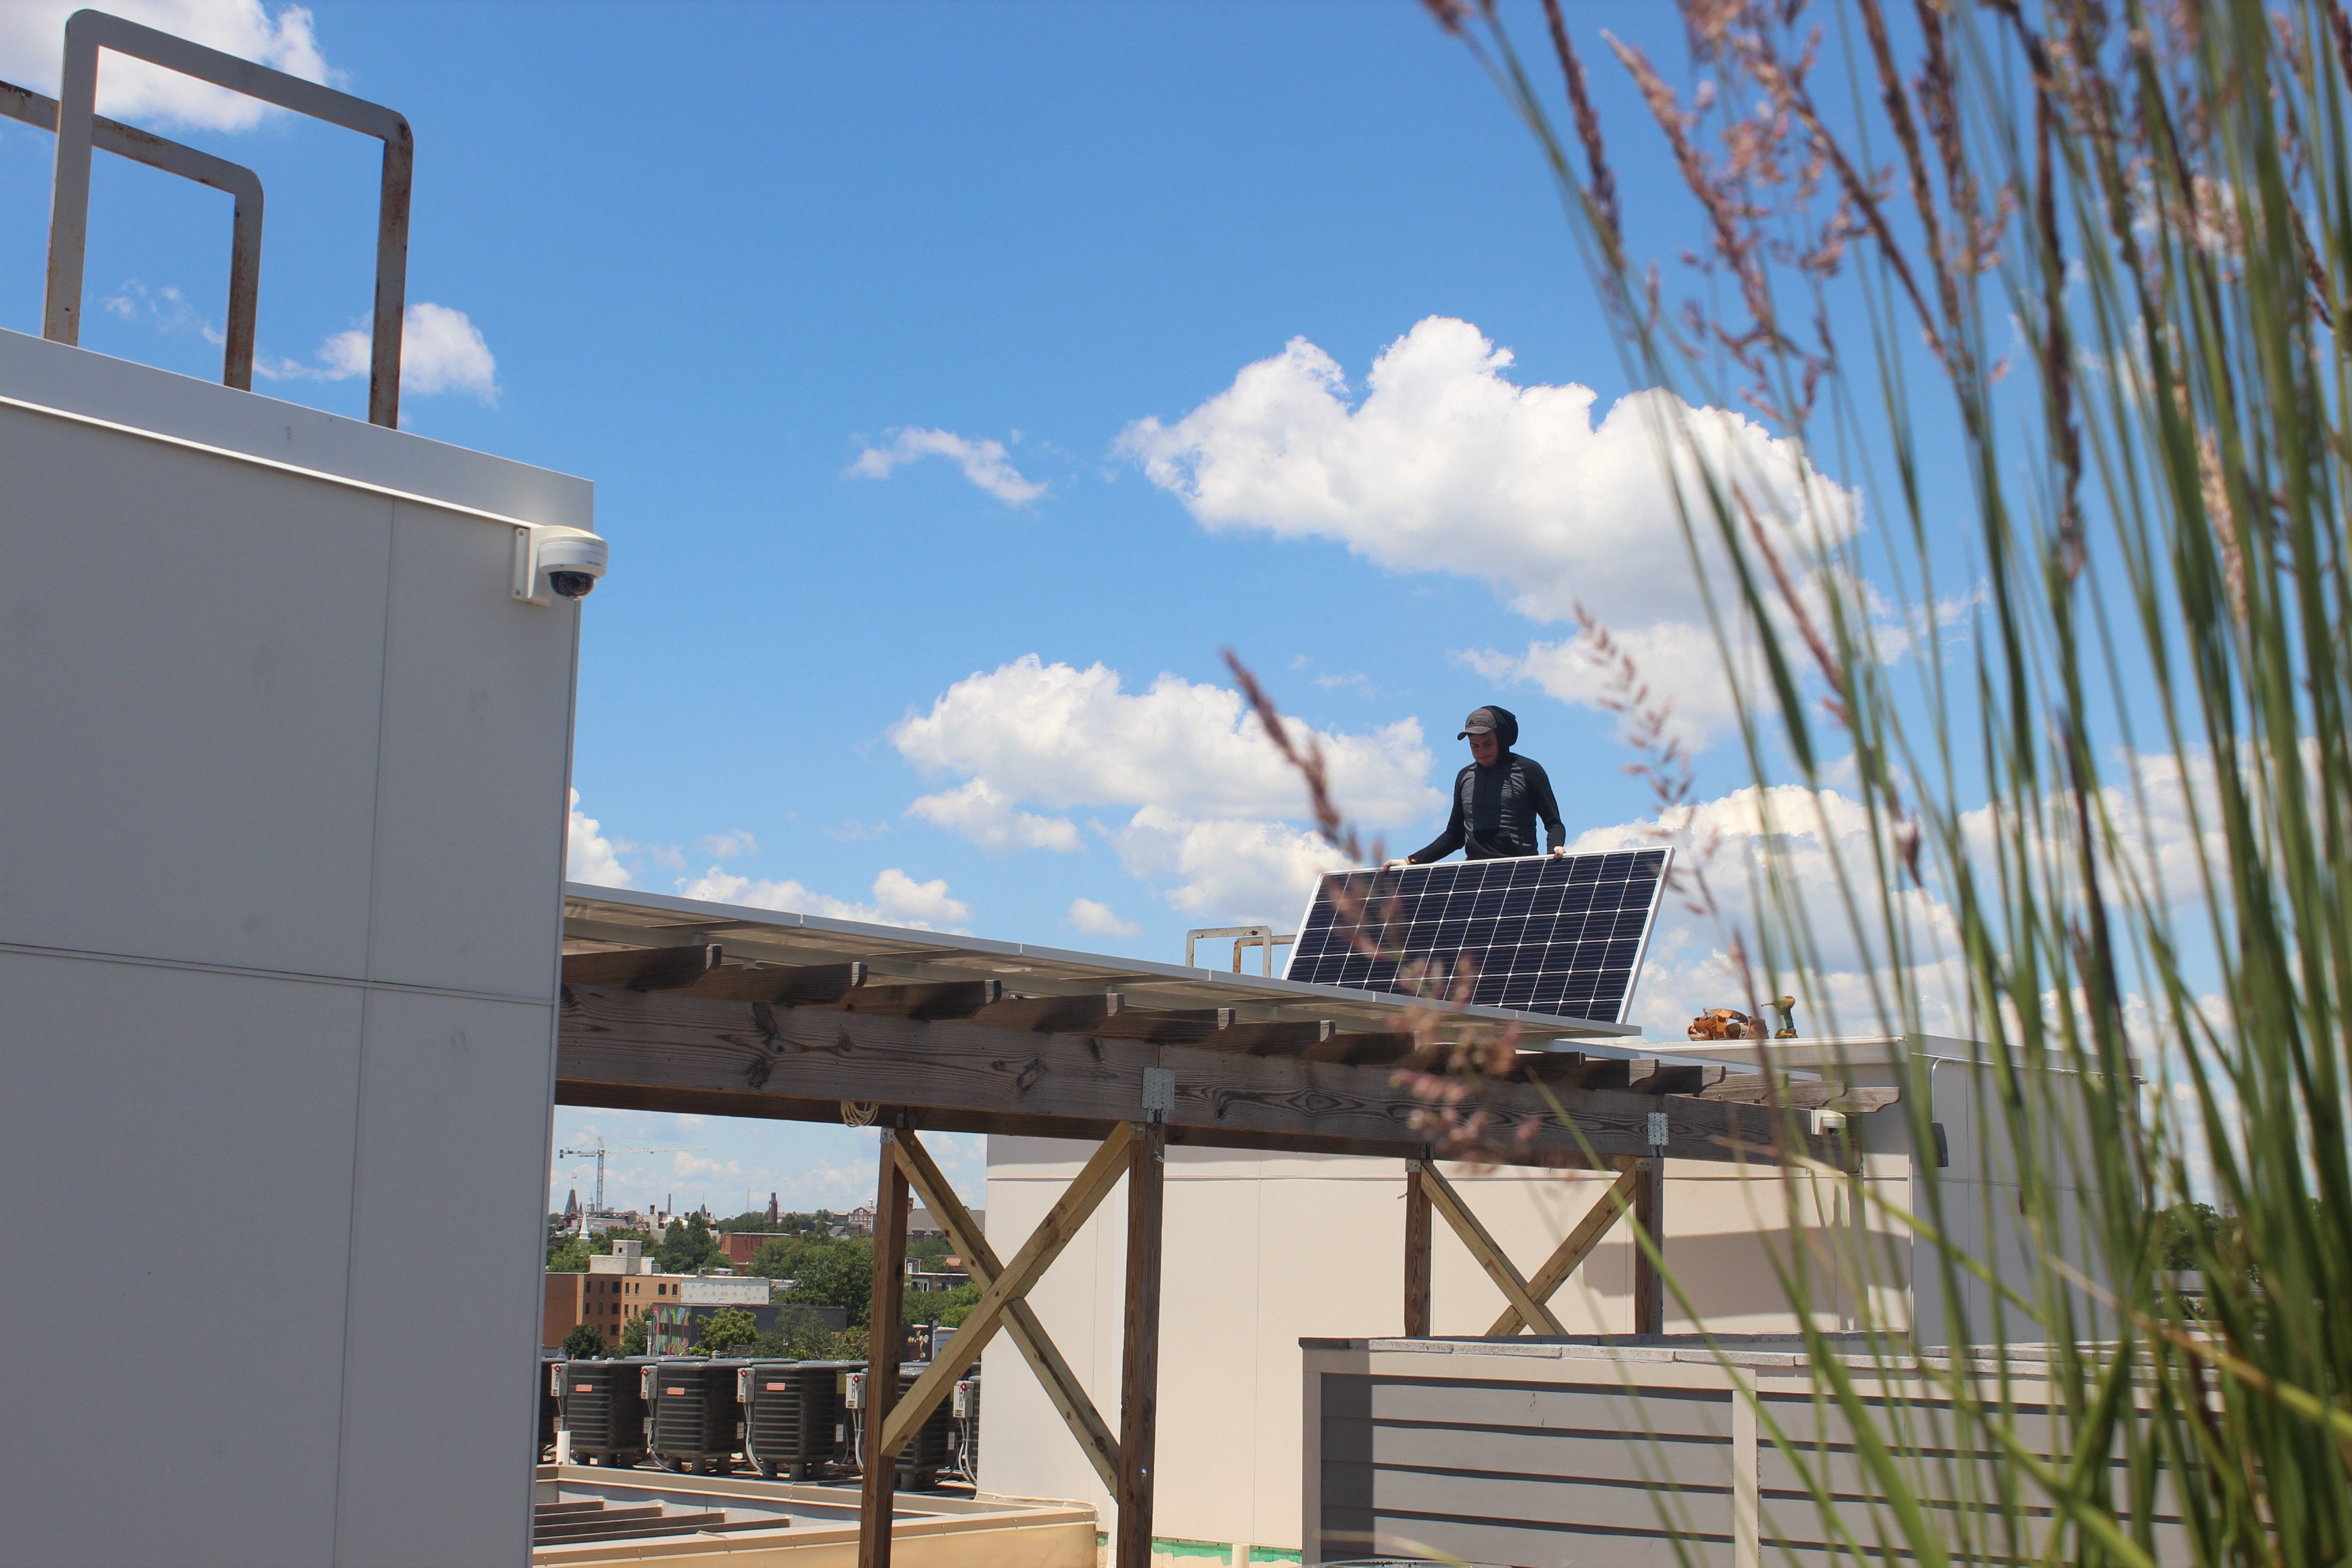 Commercial solar panels in Washington DC